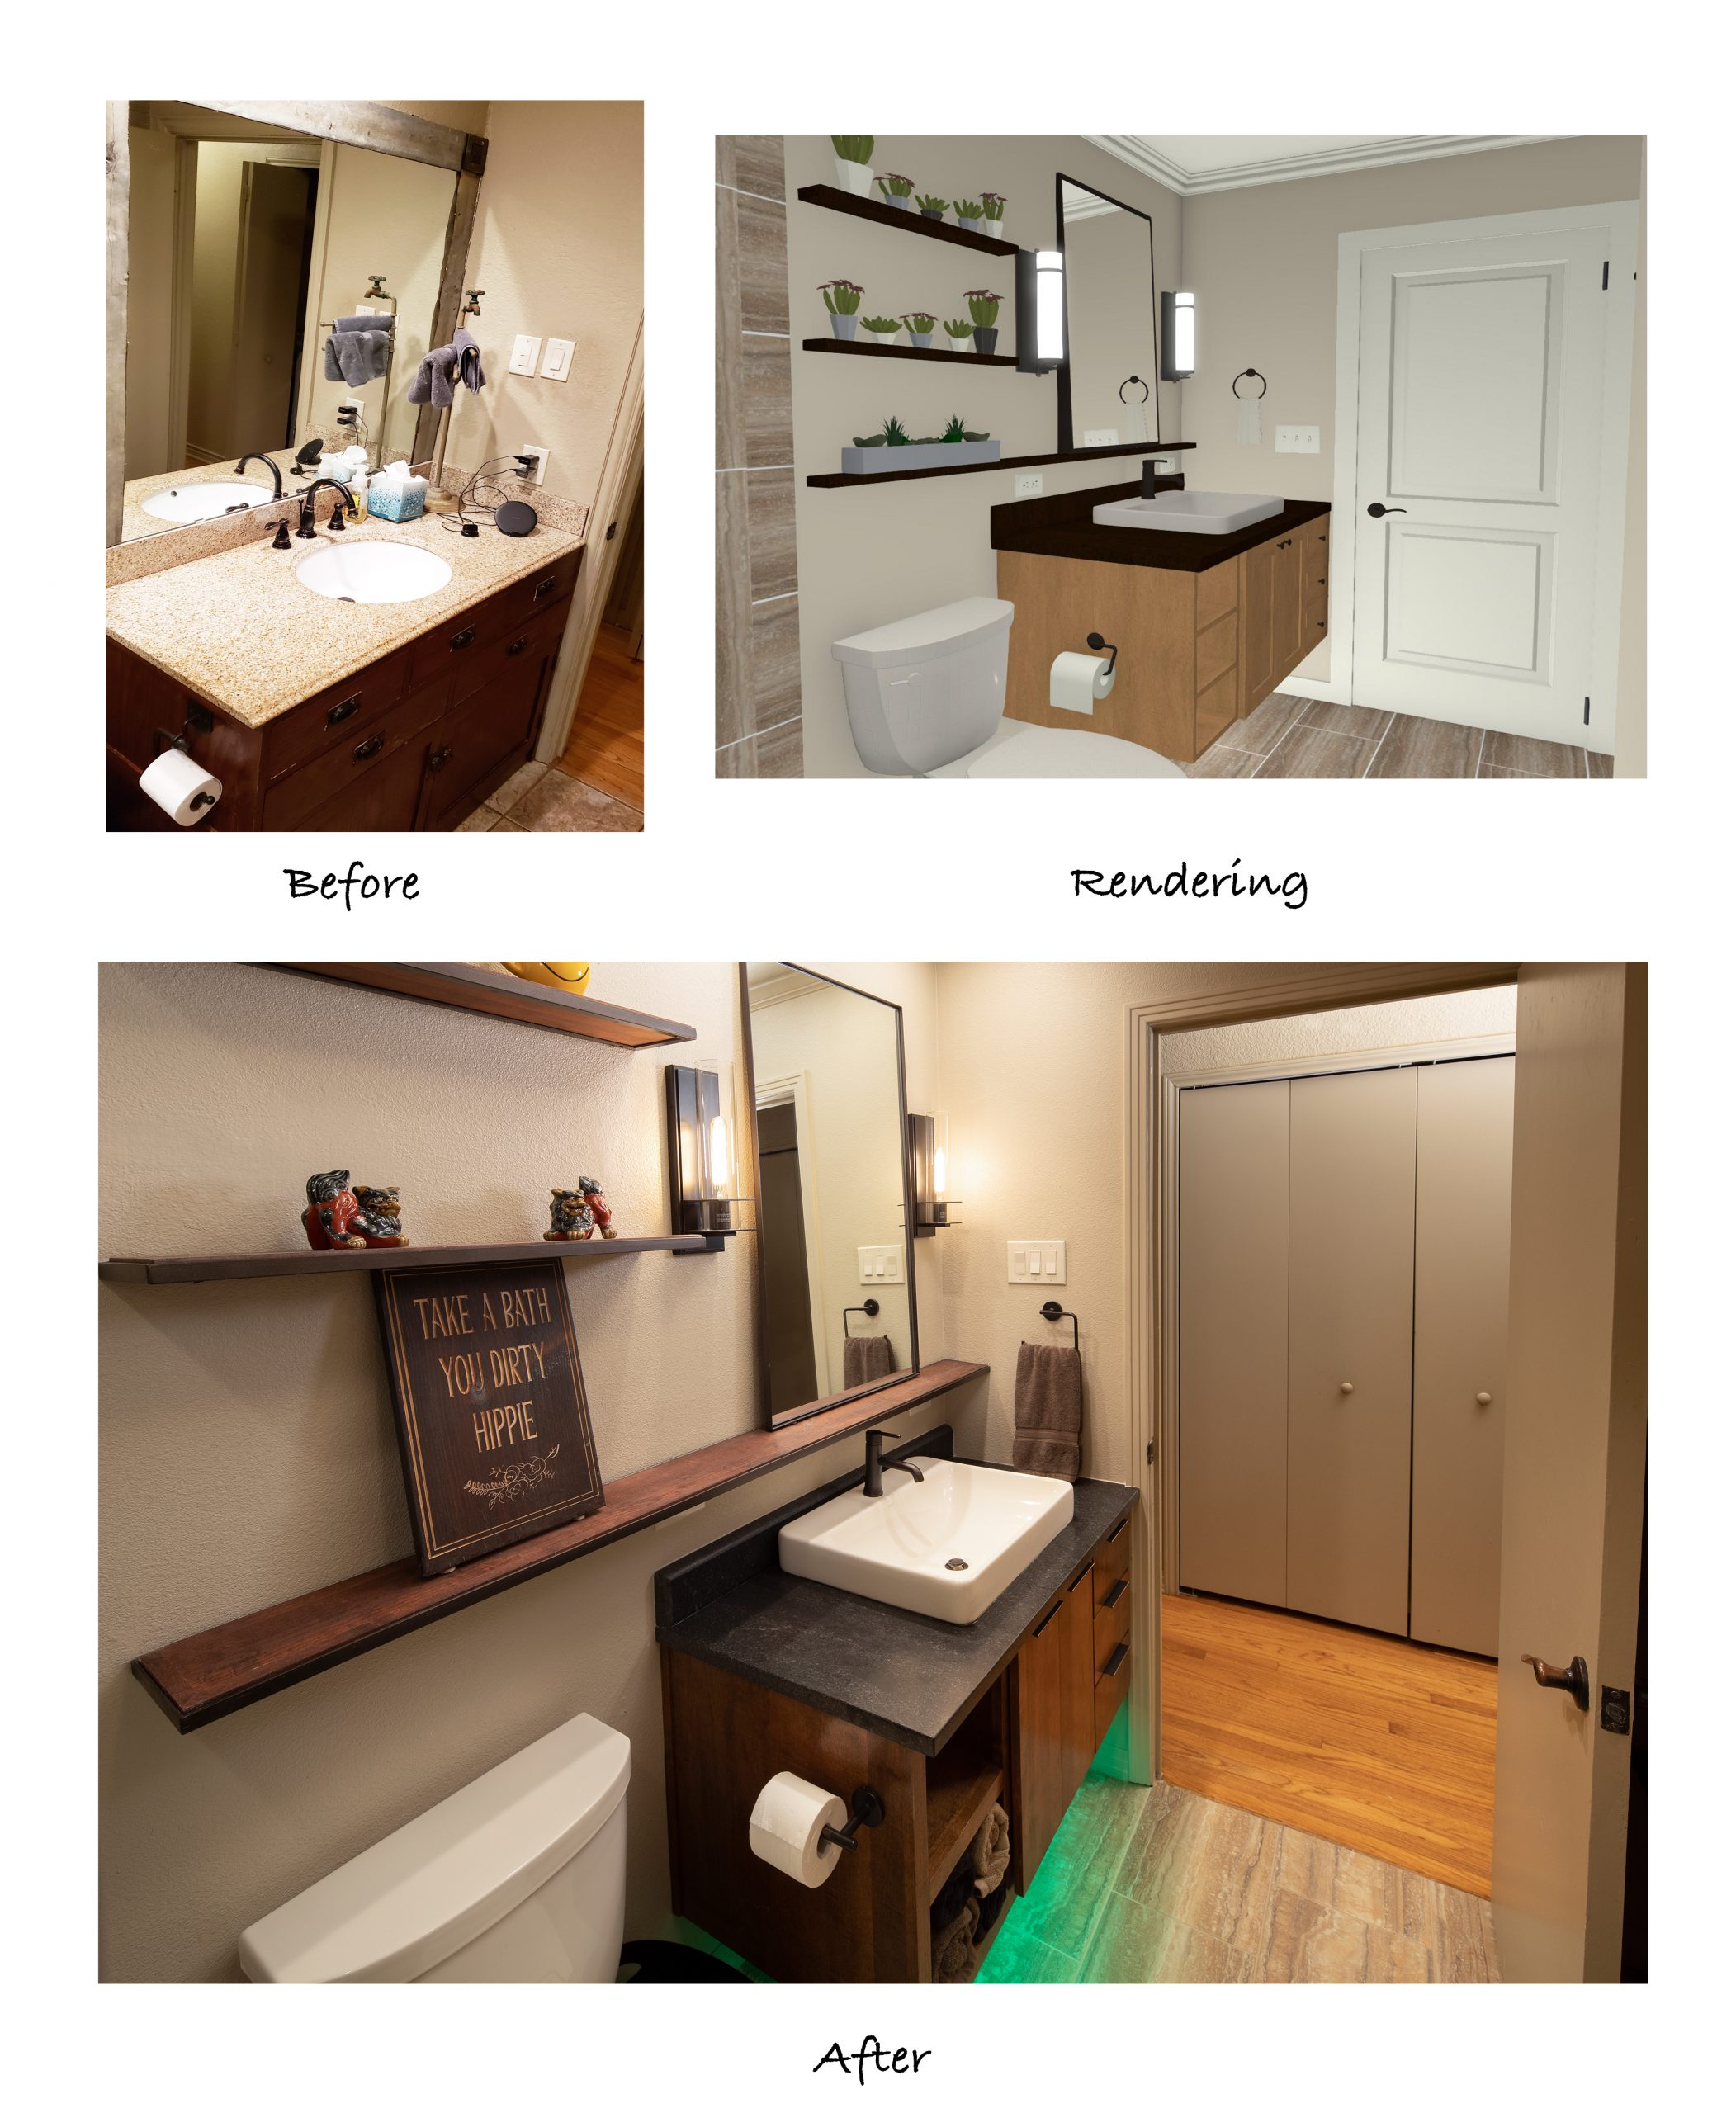 A Nature-Inspired Guest Bathroom Renovation - BEFORE AND AFTER